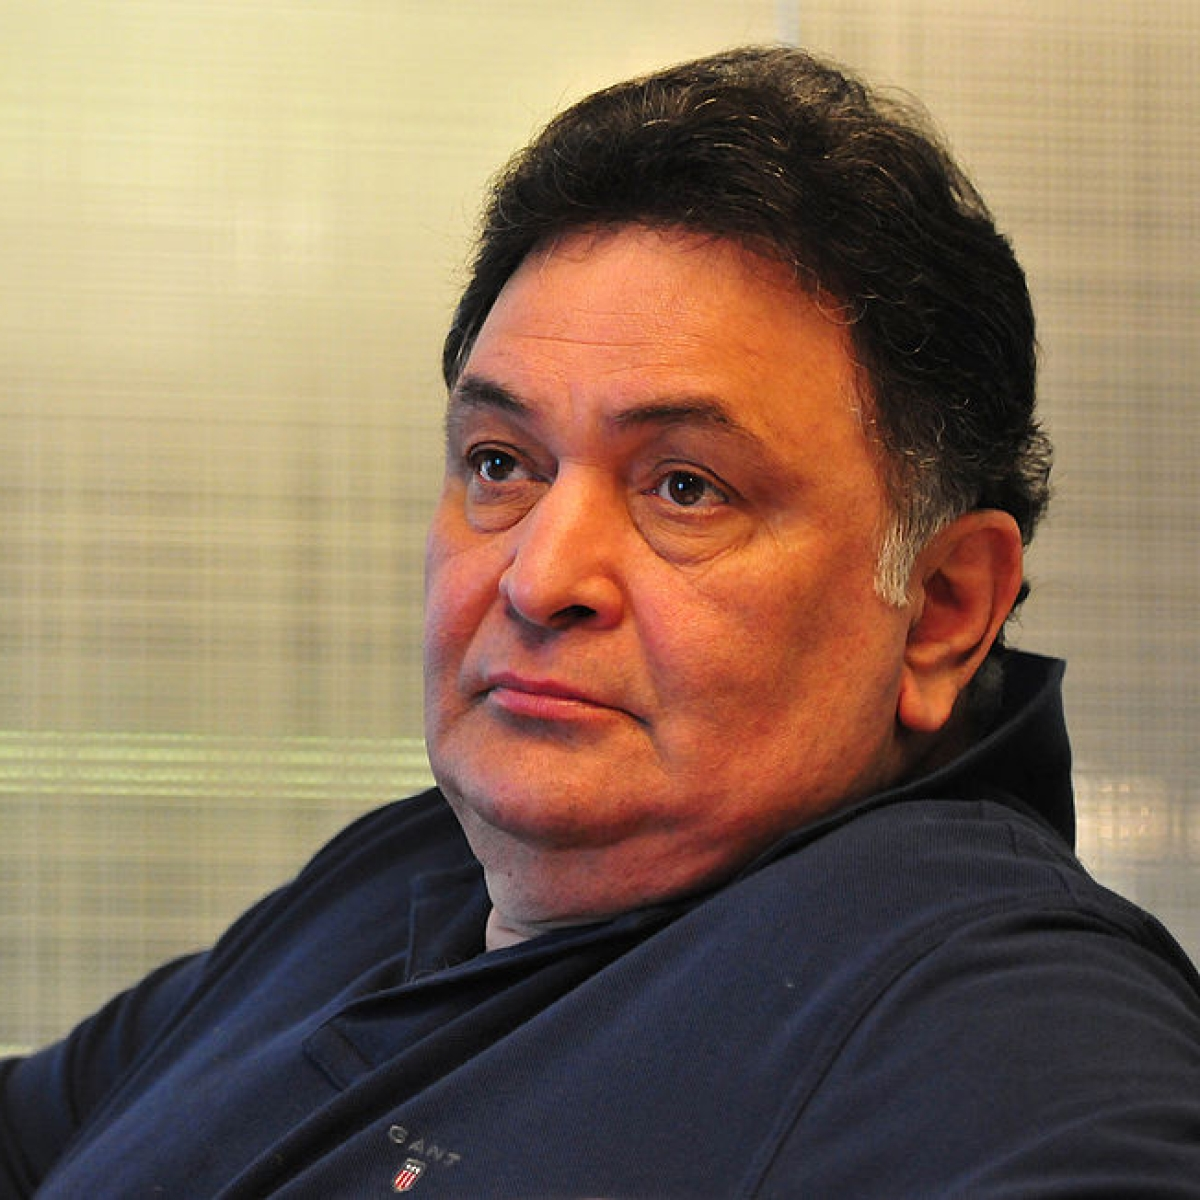 From buying an award to Raj Kapoor's affair with Nargis: Rishi Kapoor 's honest-to-god interviews